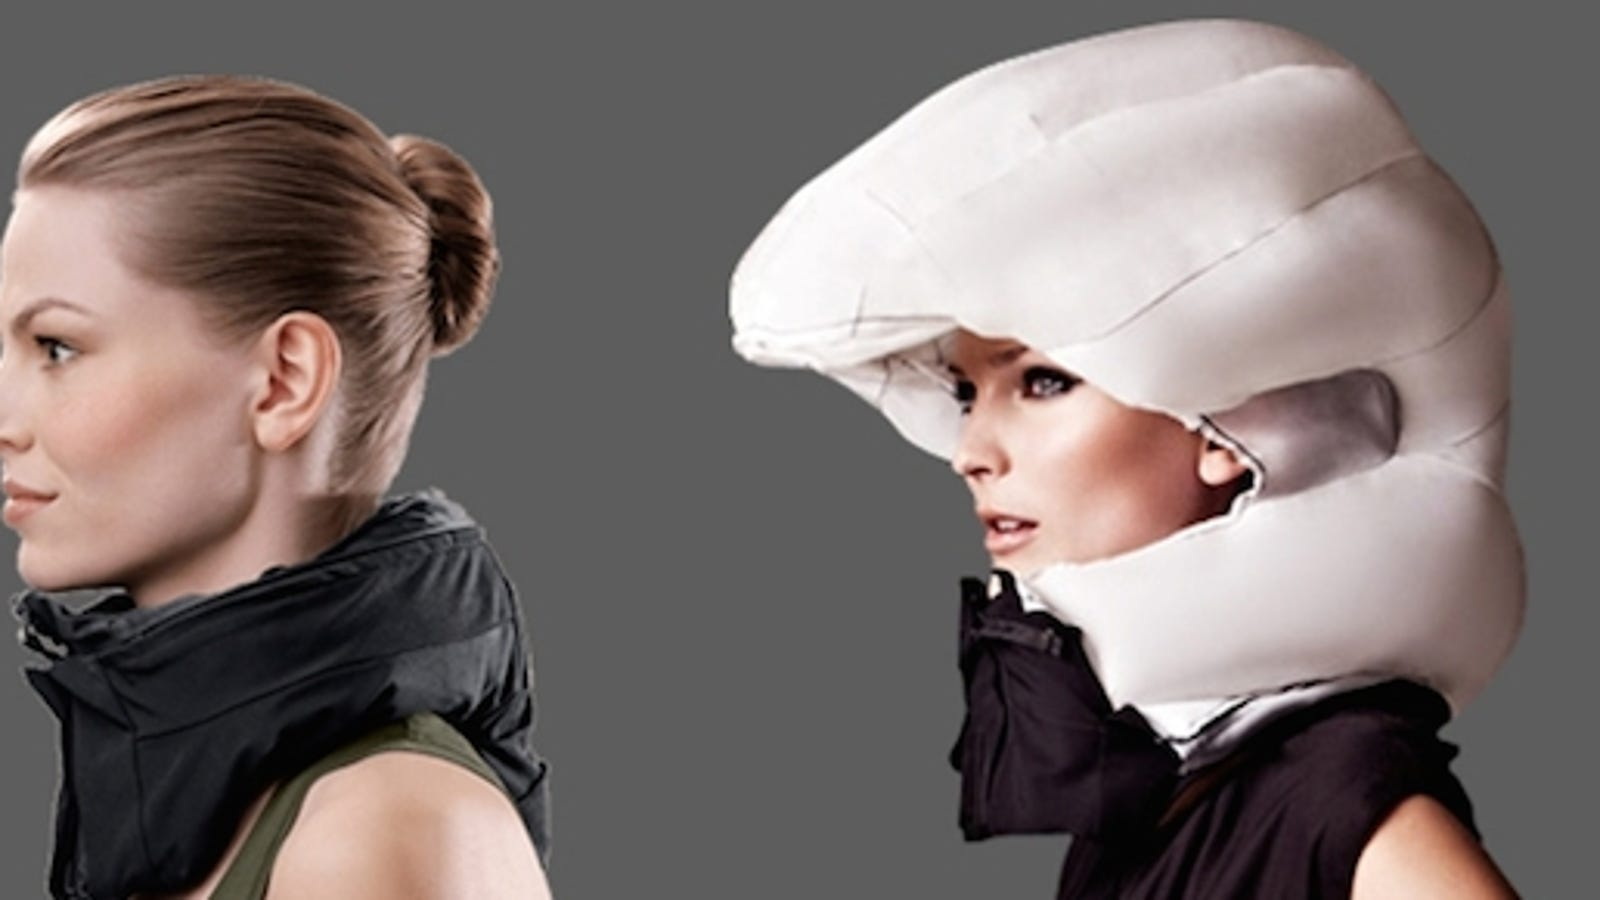 403eaa25a7e Is An Airbag For Your Head Really Safer Than A Bike Helmet